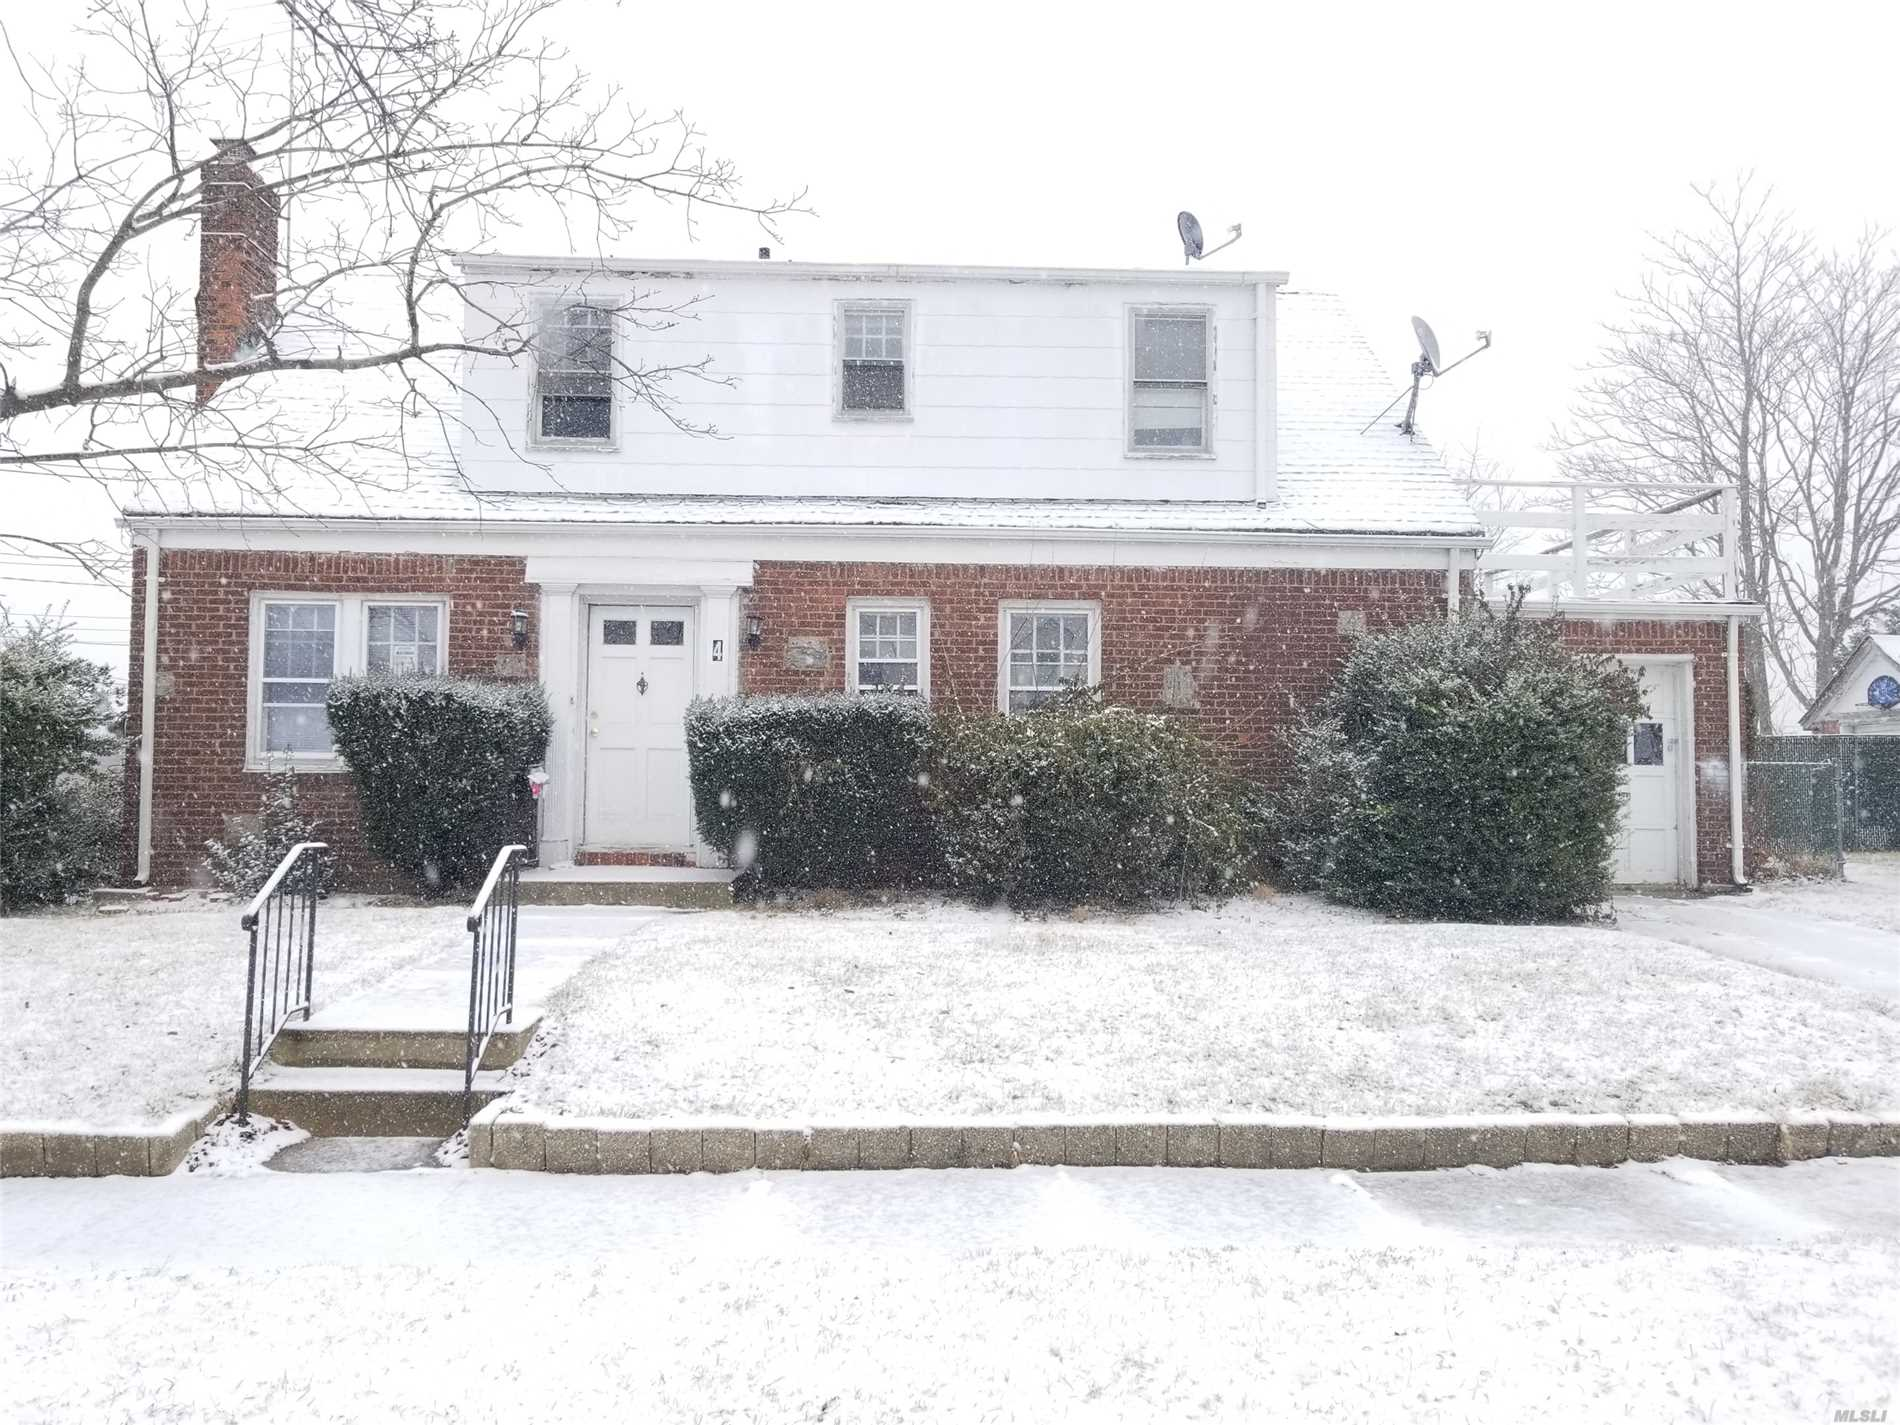 Cape With 4 Bedrooms, 2 Baths, Unfinished Basement. Livingrooms With Hardwood Floors And Fireplace. Corner Property. Close To Shopping, Transportation And Major Roadways